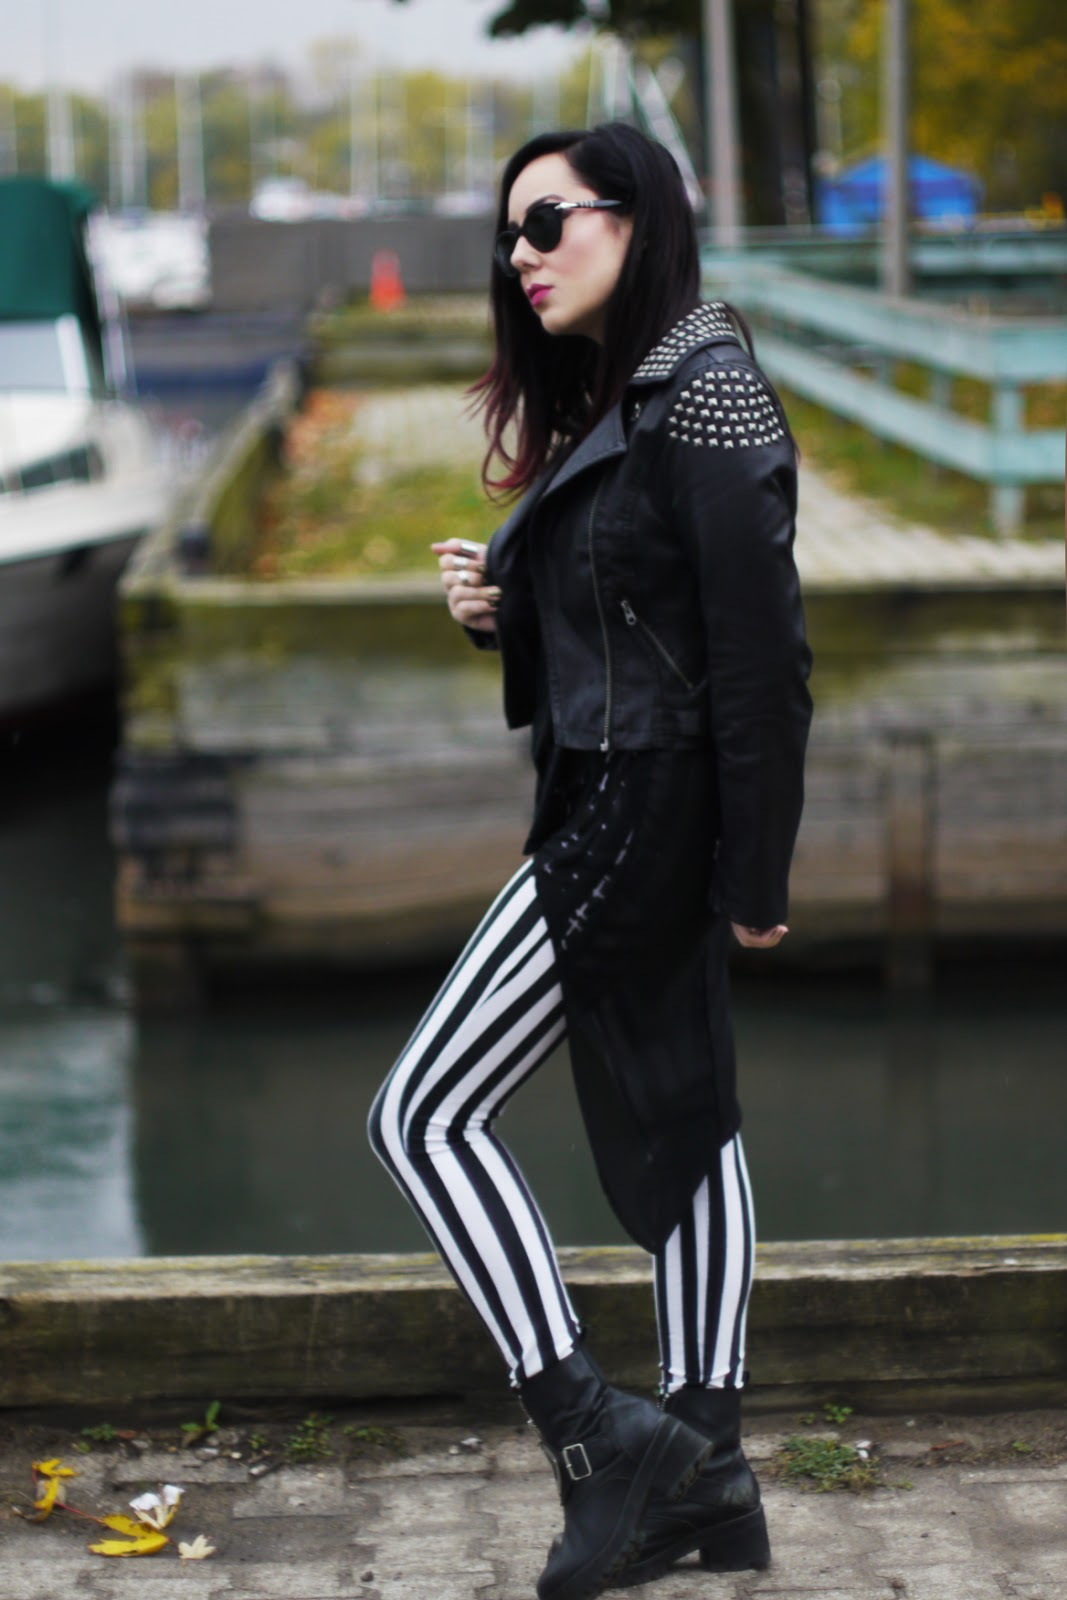 OOTD: Stripes, Leather and Crosses - Tara Mason